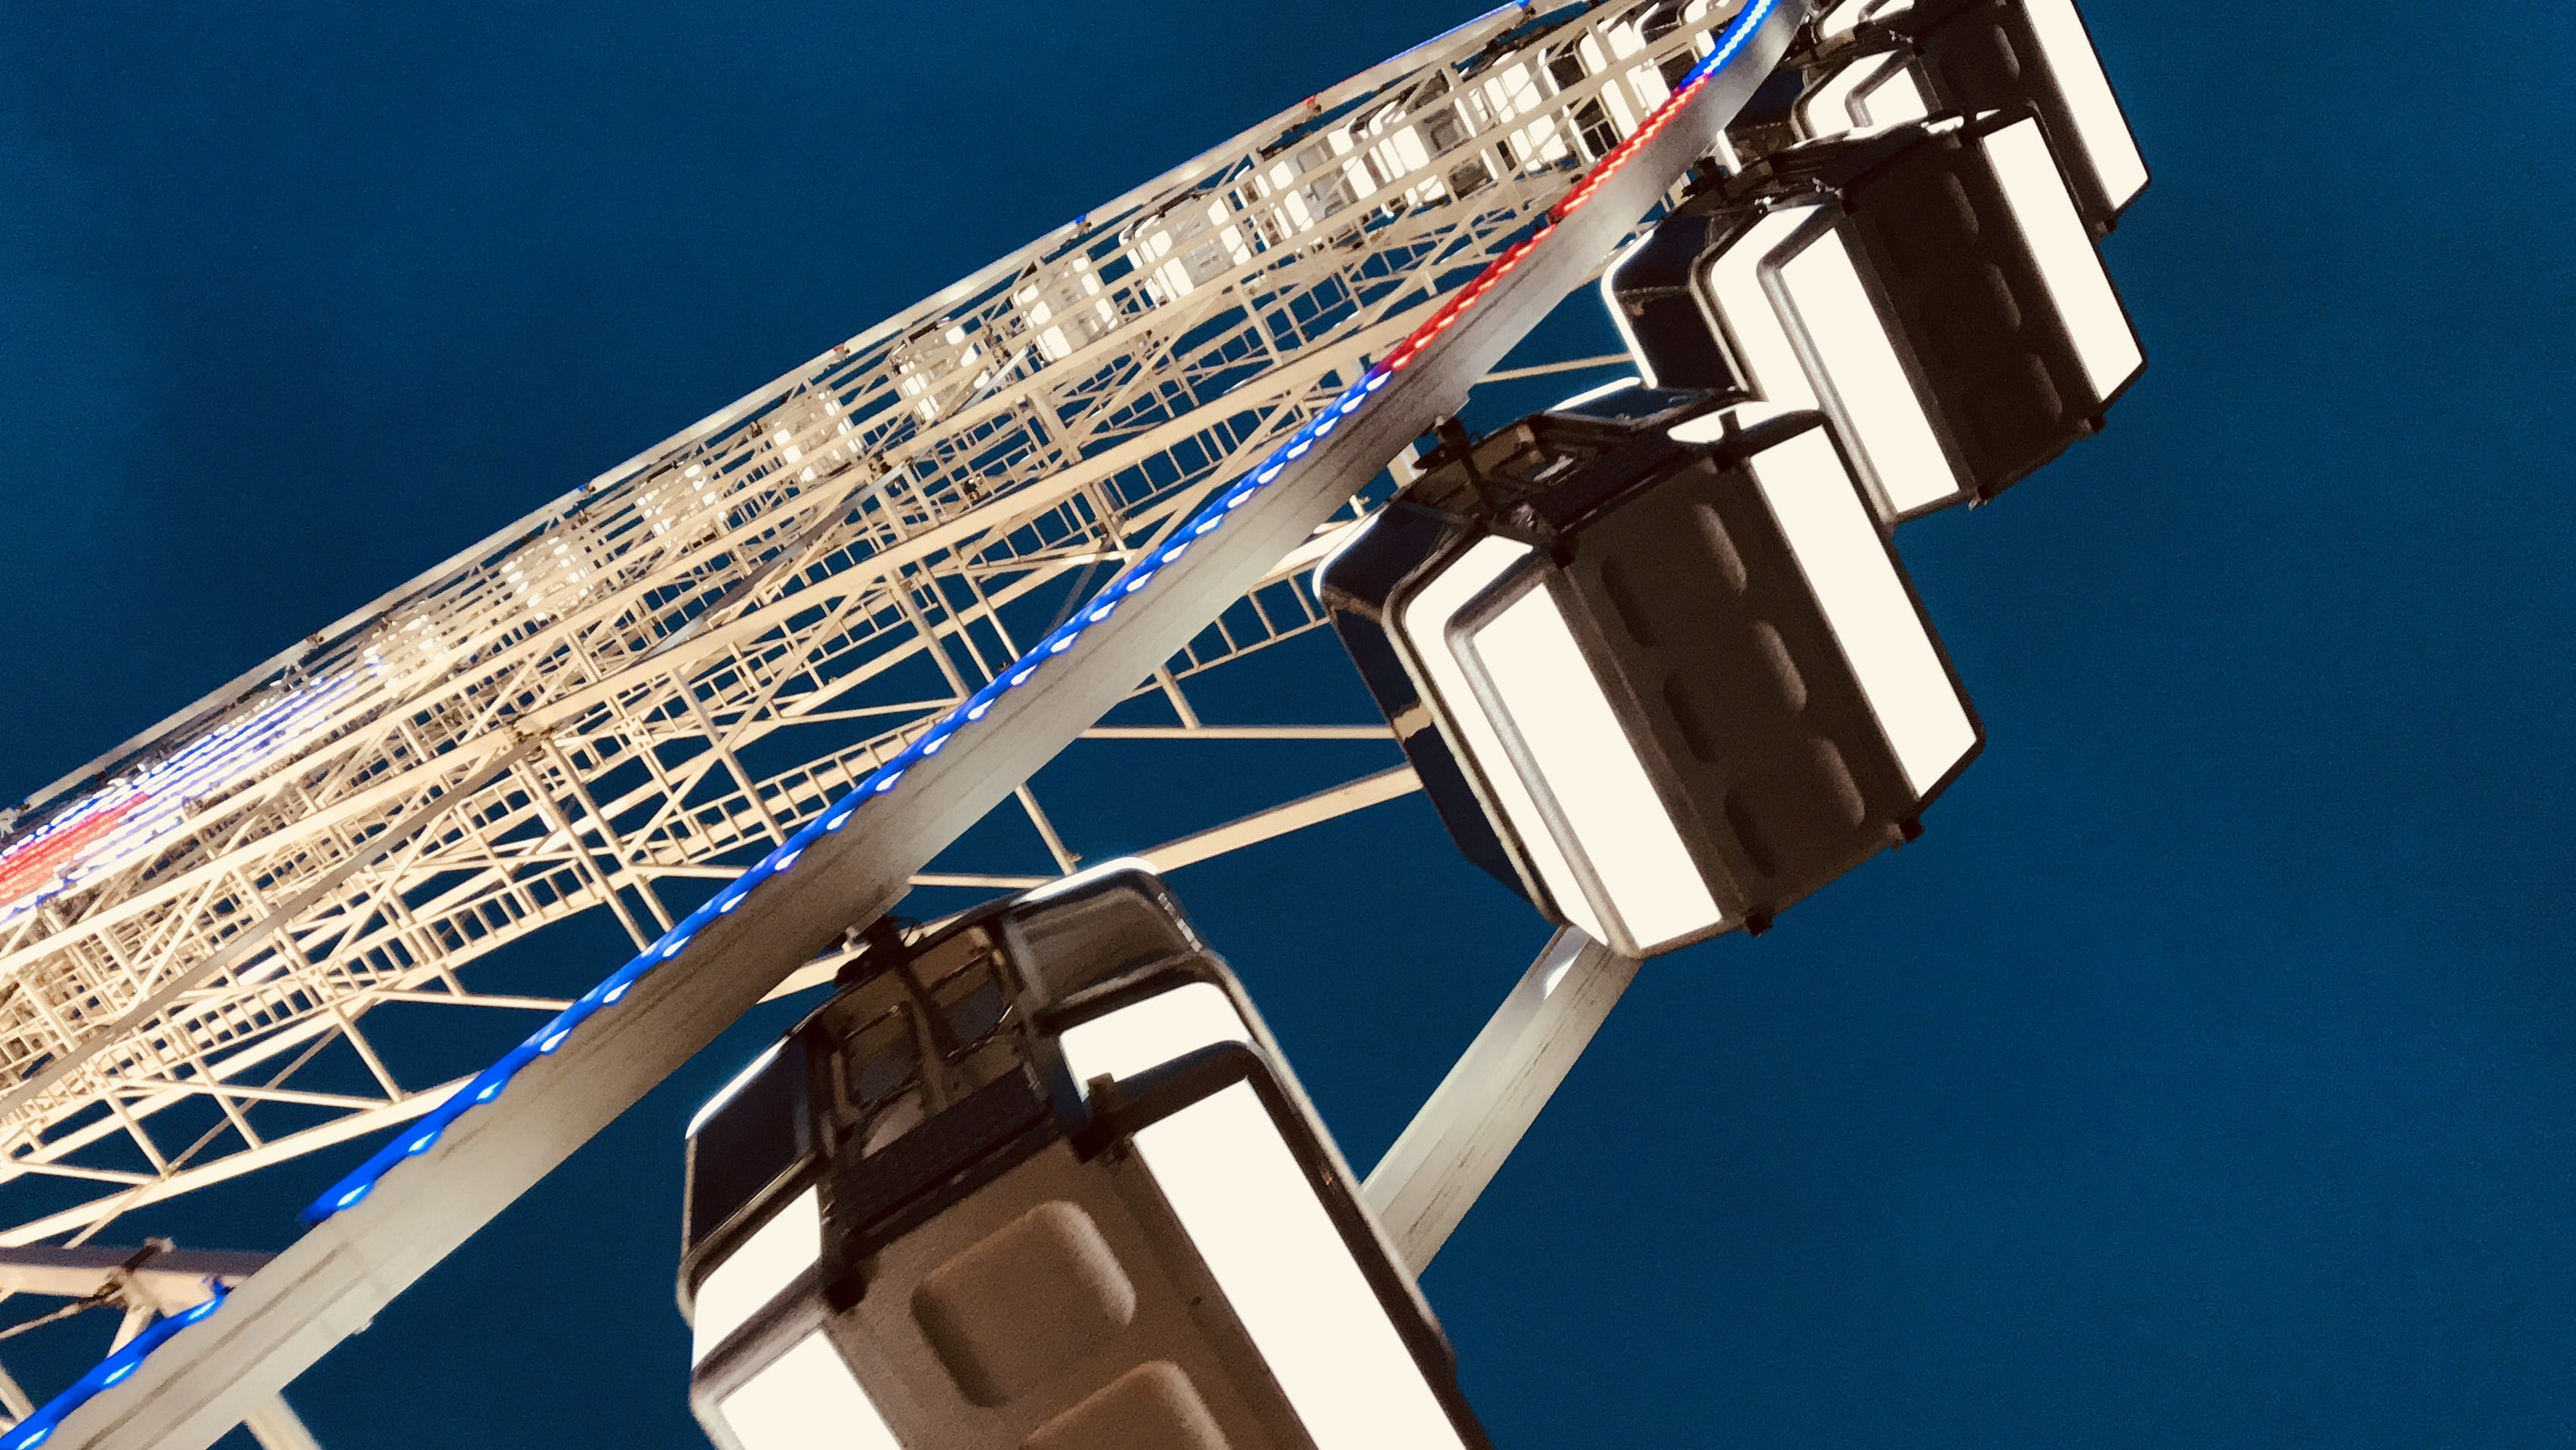 Worm's Eye View of Ferris Wheel